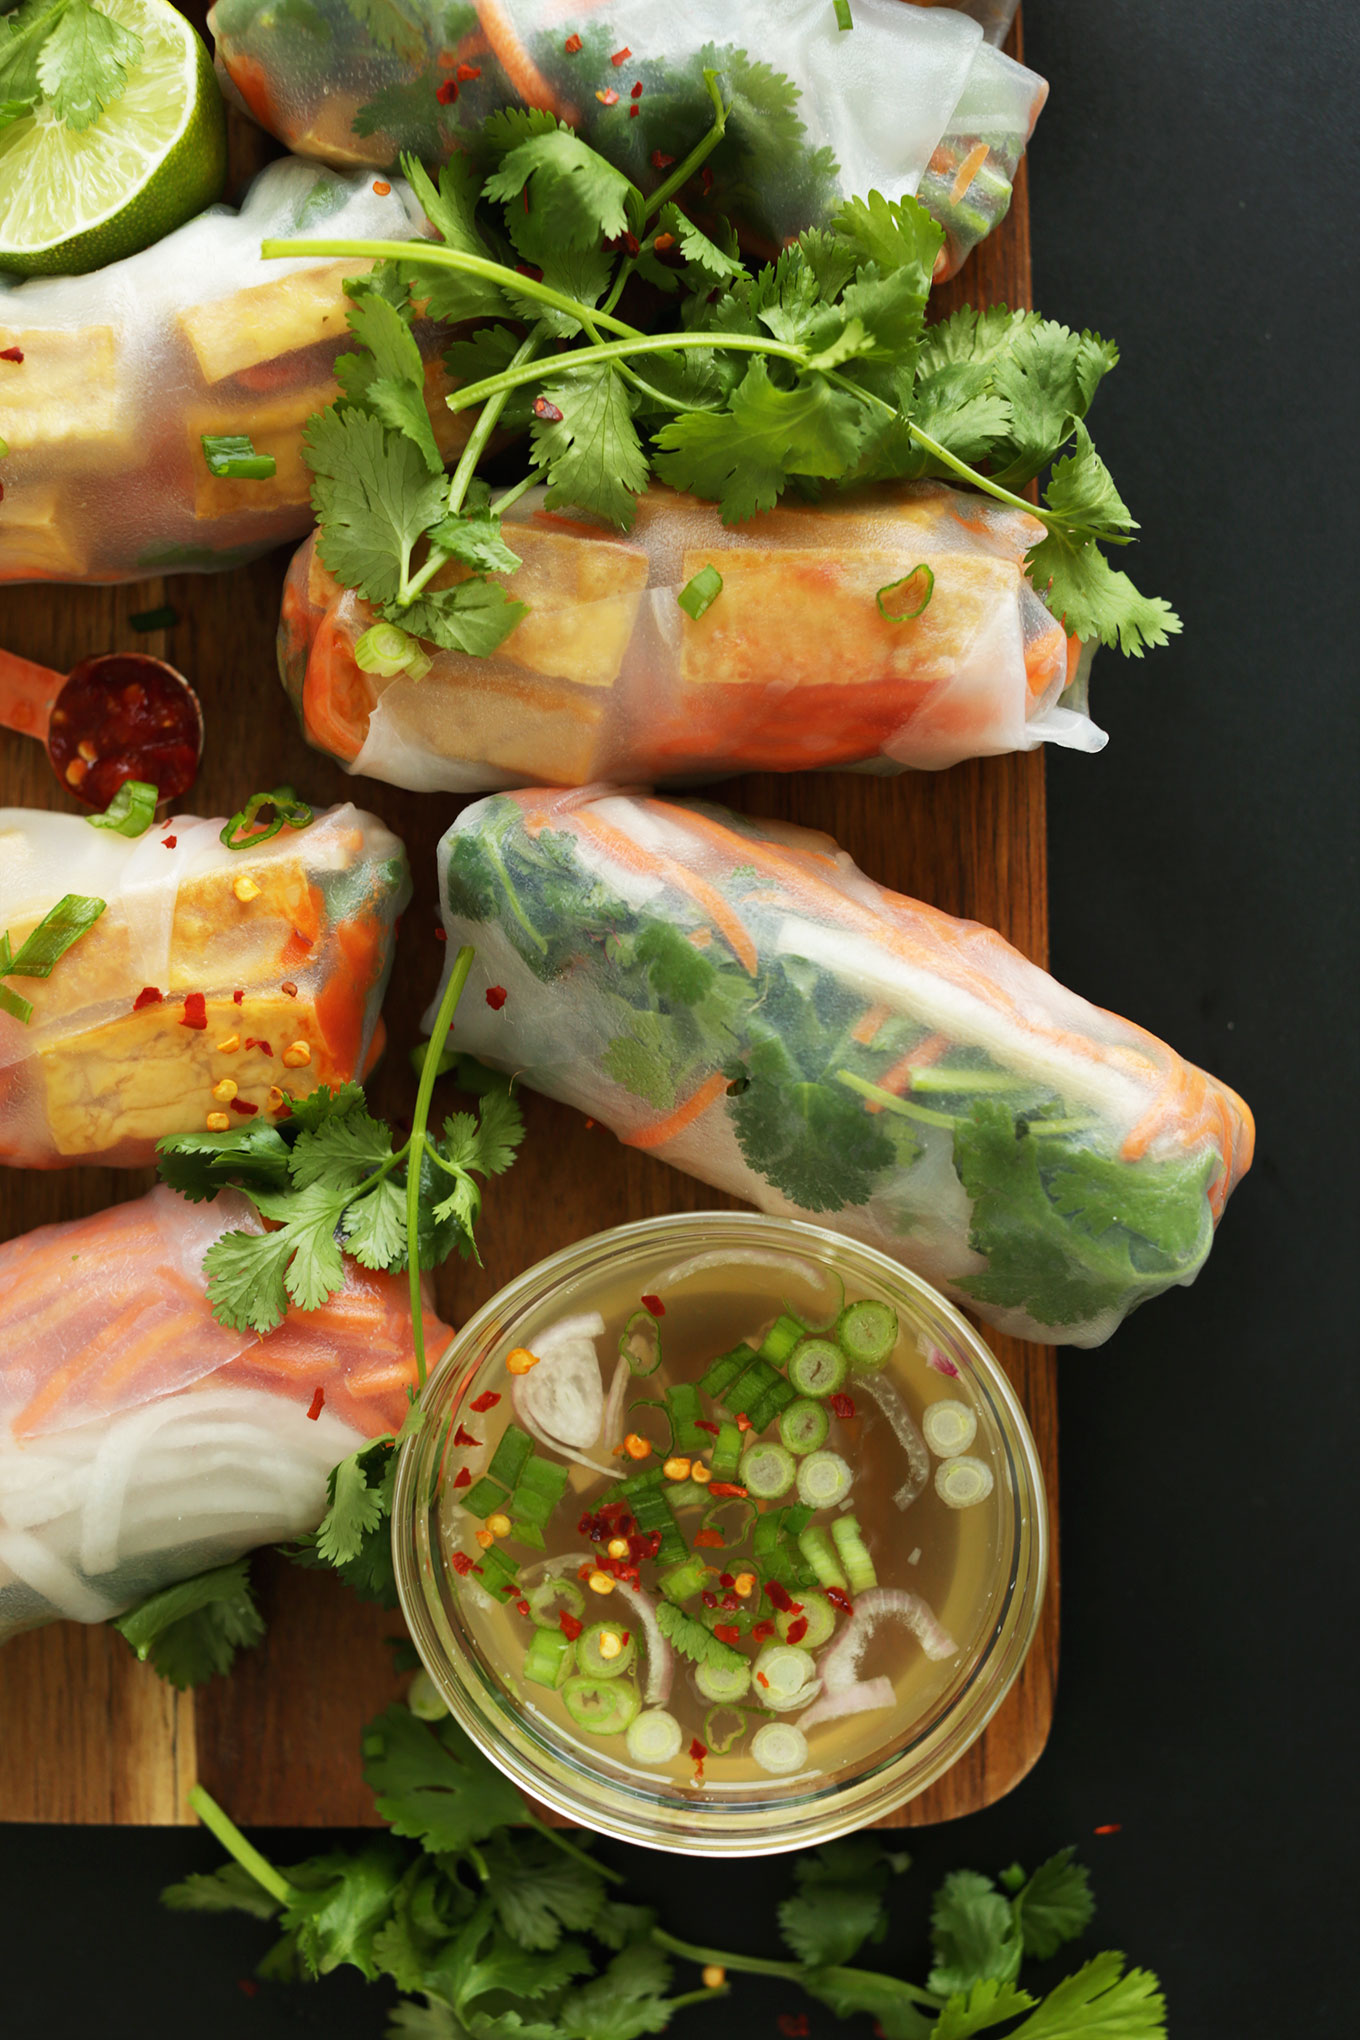 Wood platter of Bahn Mi Spring Rolls and sauce for a fresh vegan meal